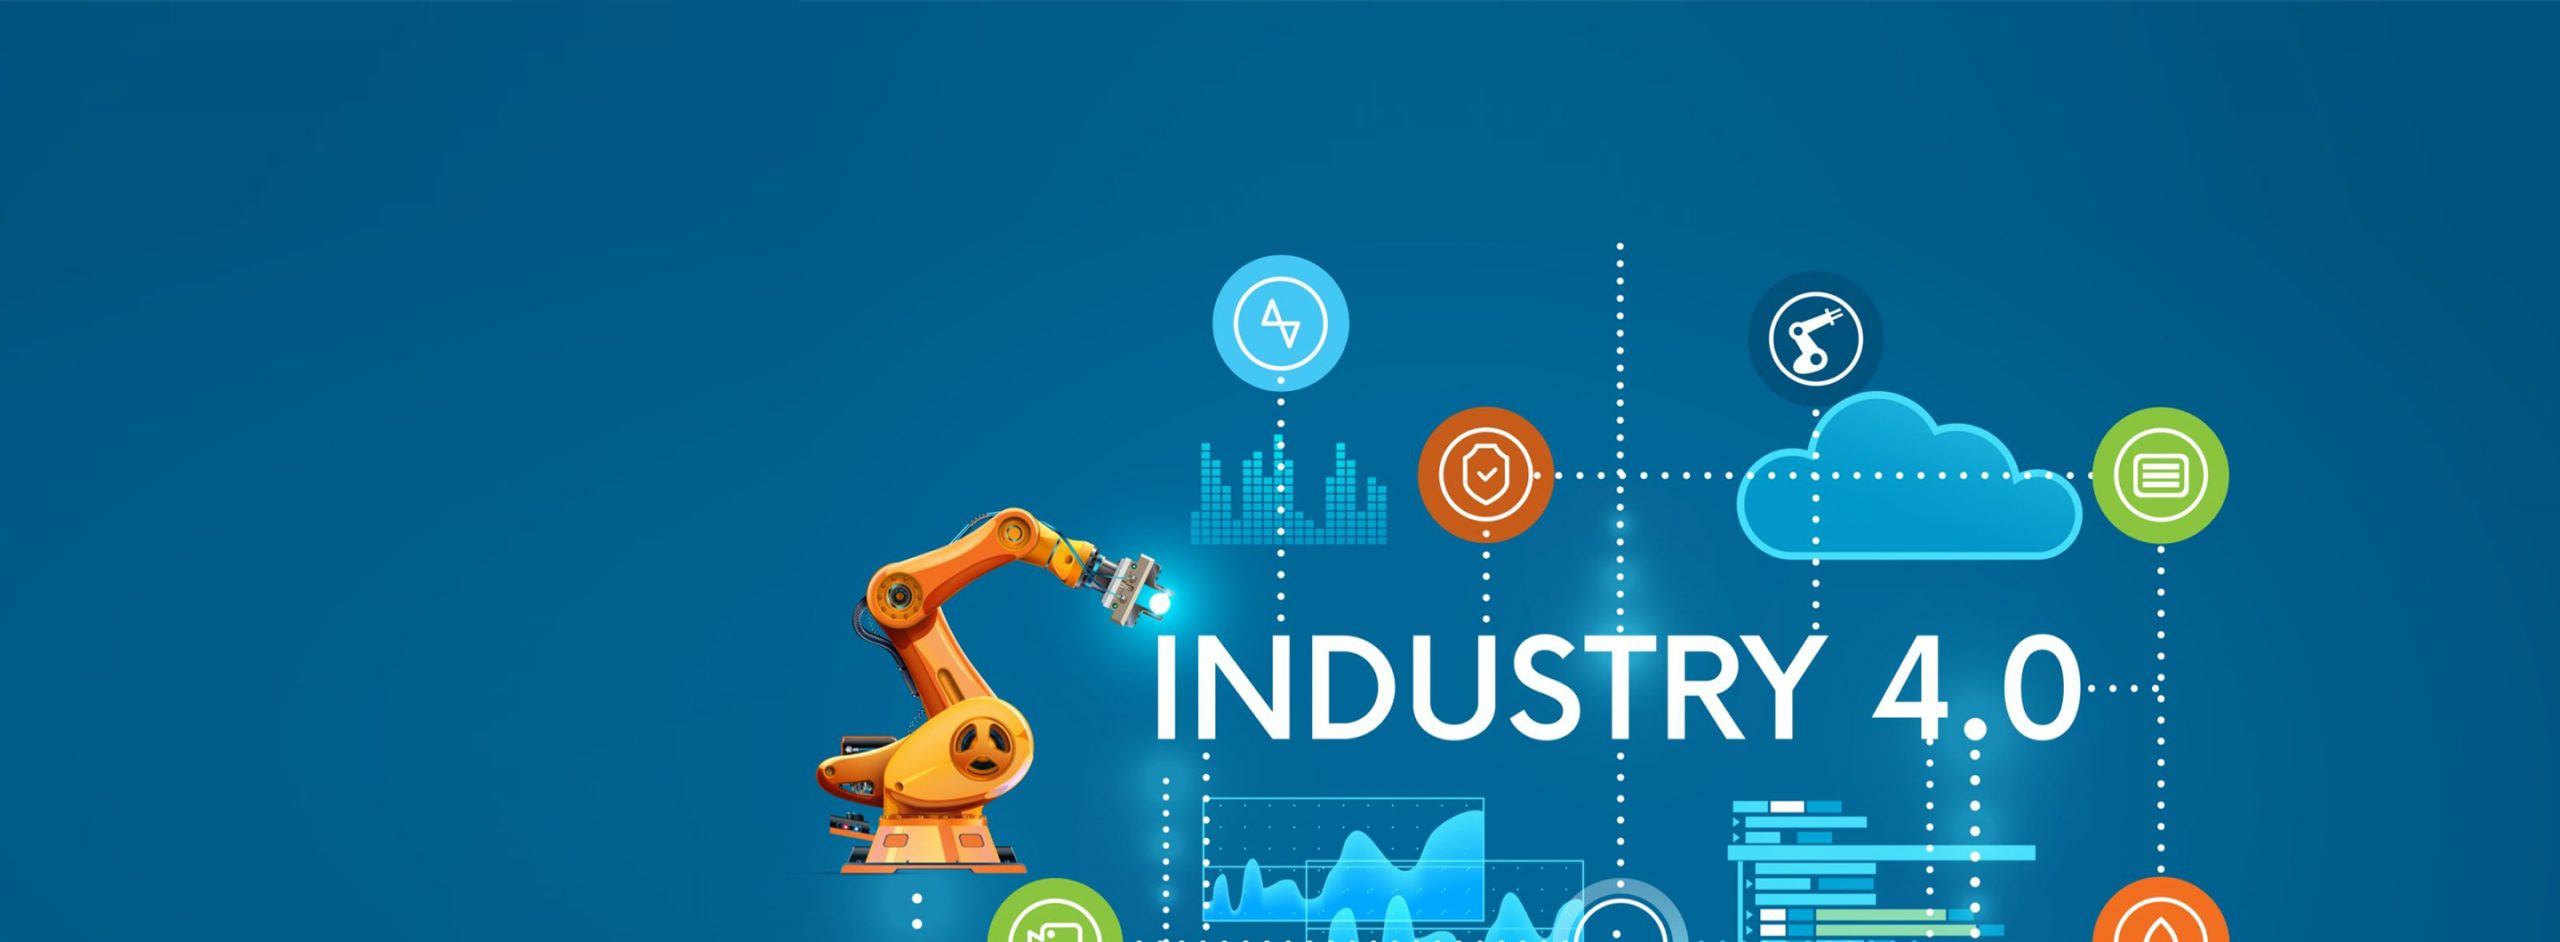 blog-banner-Role-of-Artificial-Intelligence-in-the-Indian-Manufacturing-environment